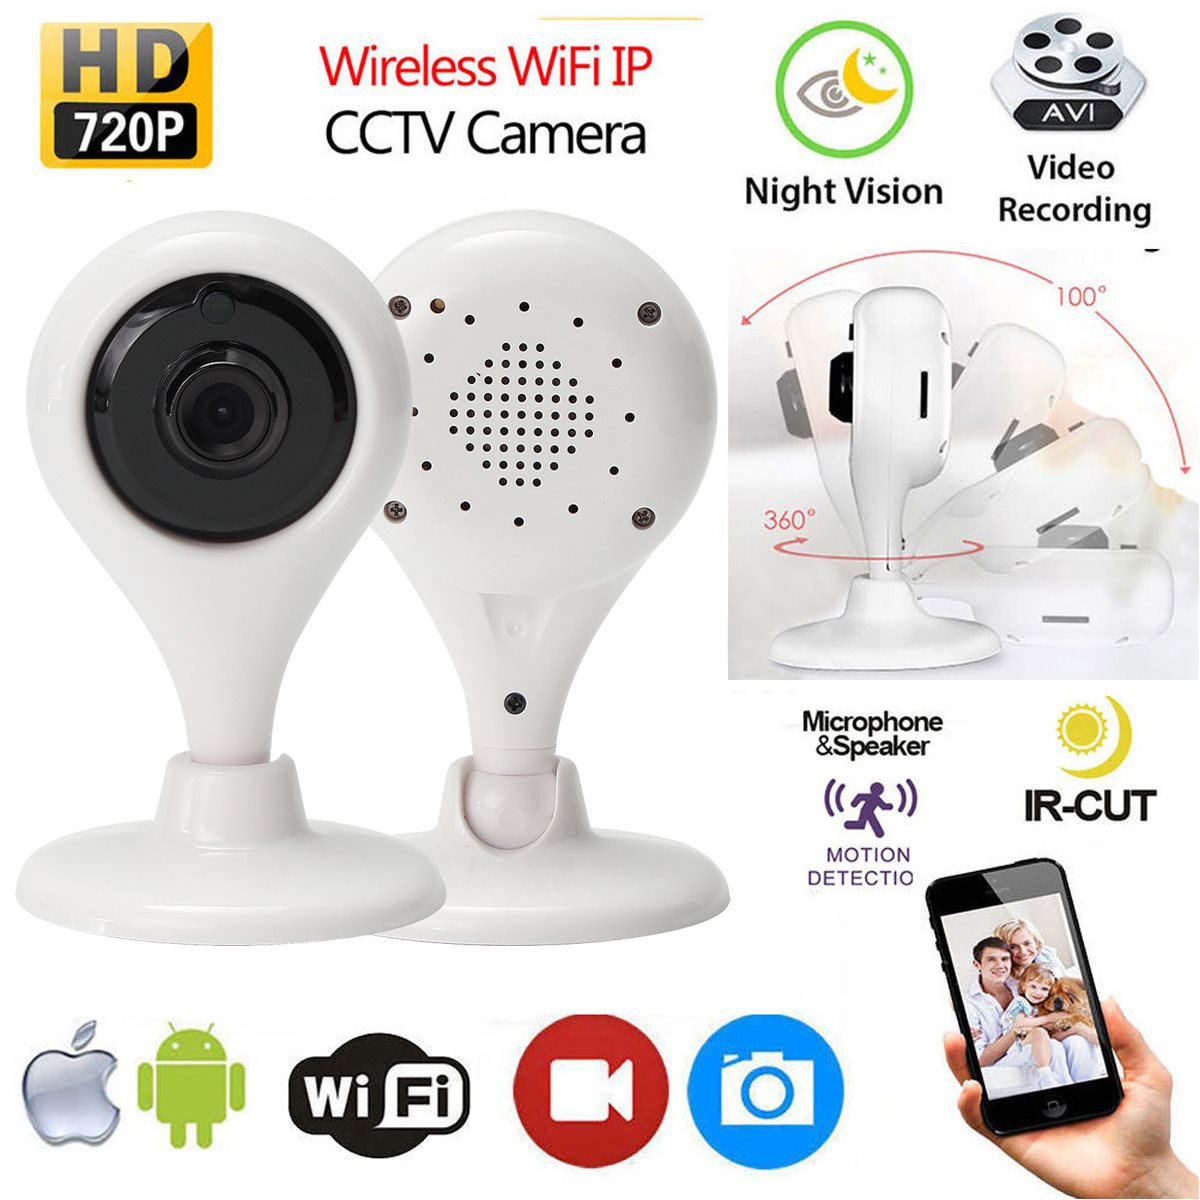 HD 720P Smart Wireless Remote WIFI IP CCTV Camera Outdoor Security Network Night Vision Surveillance Camera Baby Montors camera security home hd wireless network smart phone remote wifi night vision security monitoring